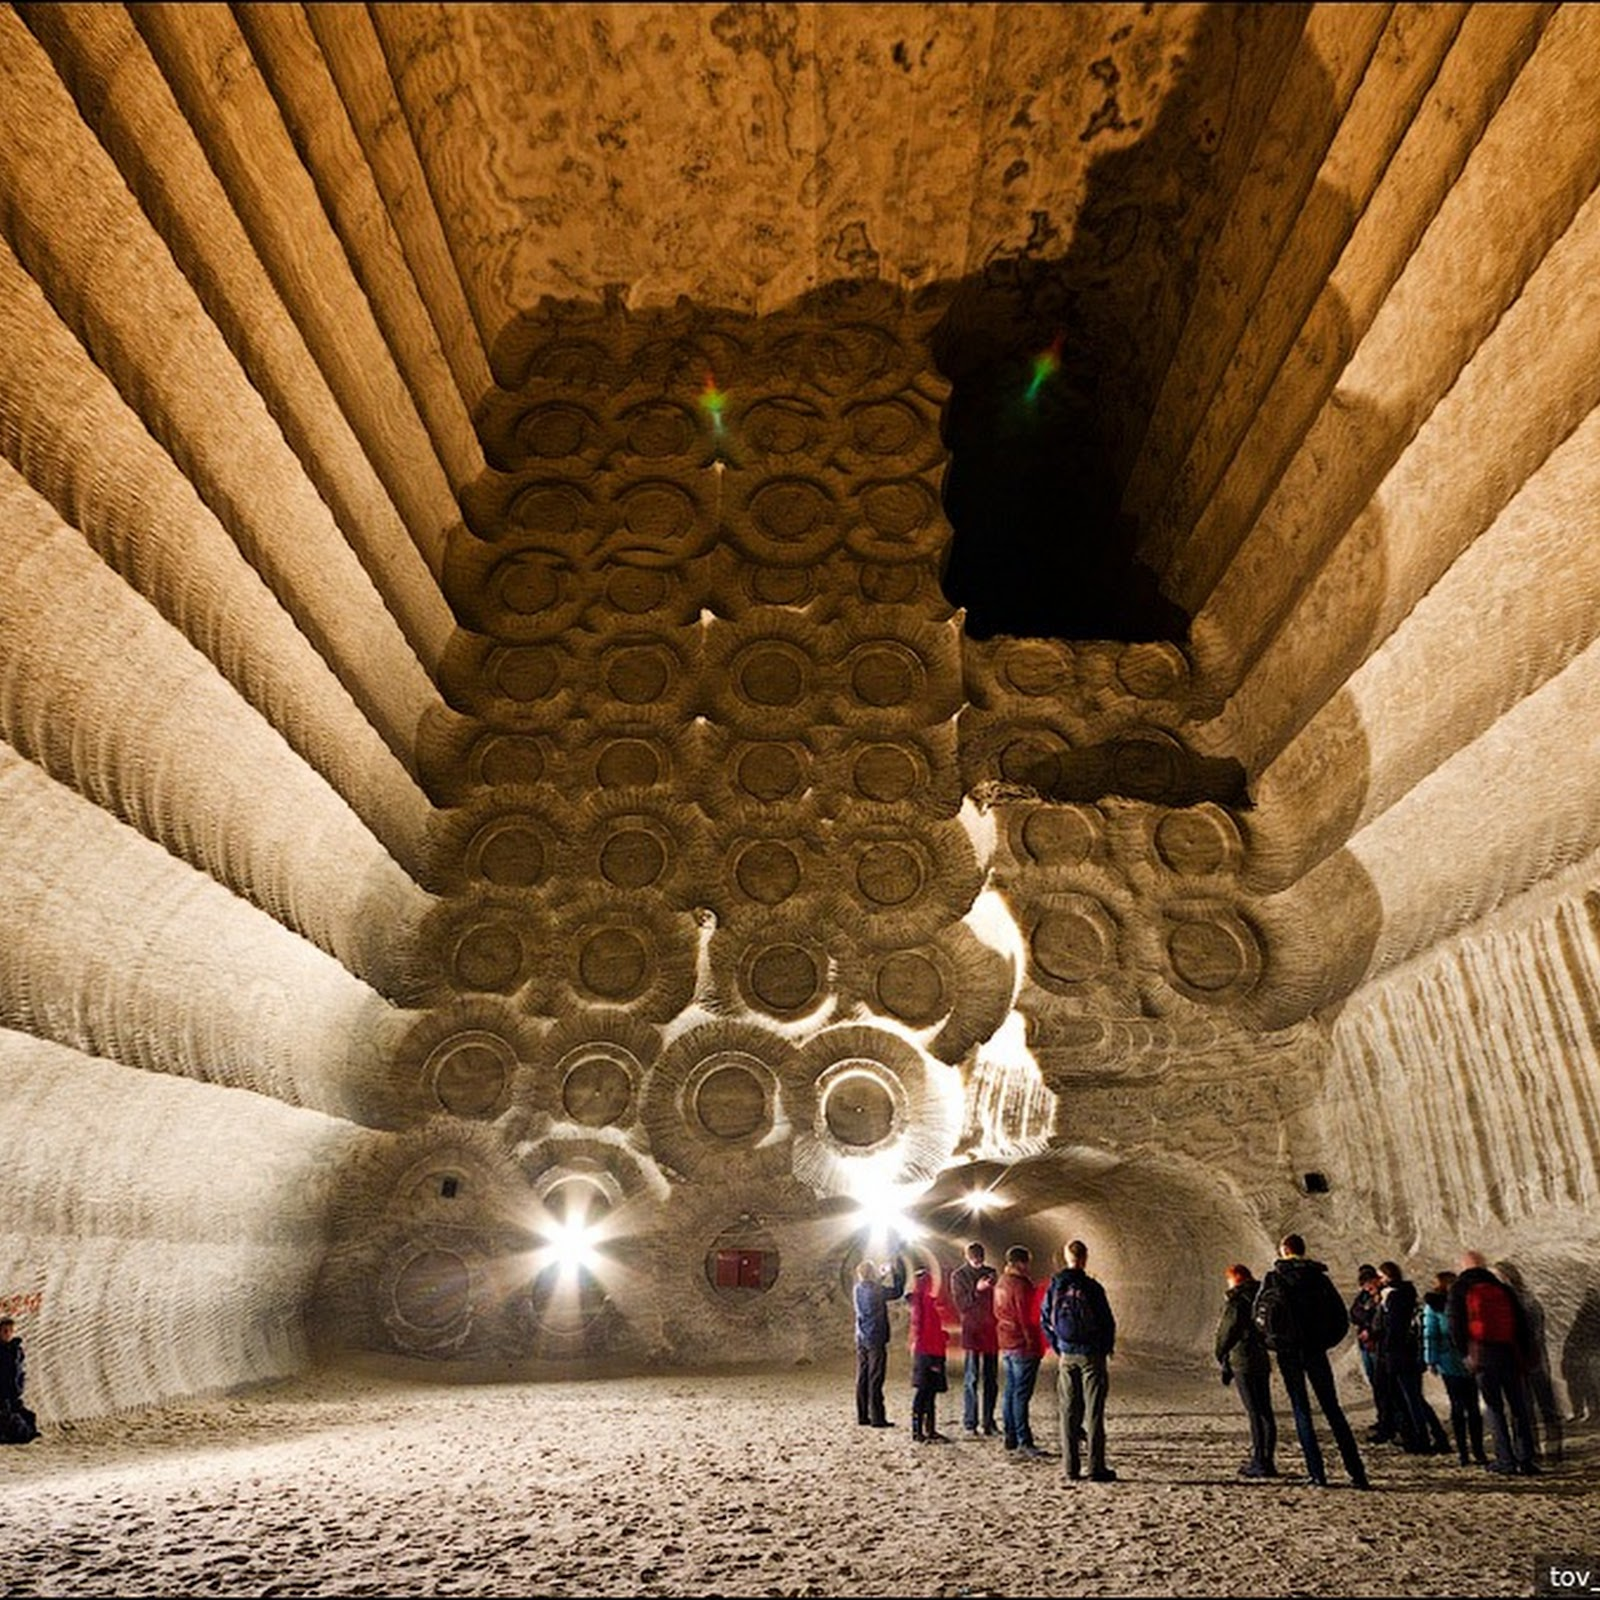 The Soledar Salt Mines